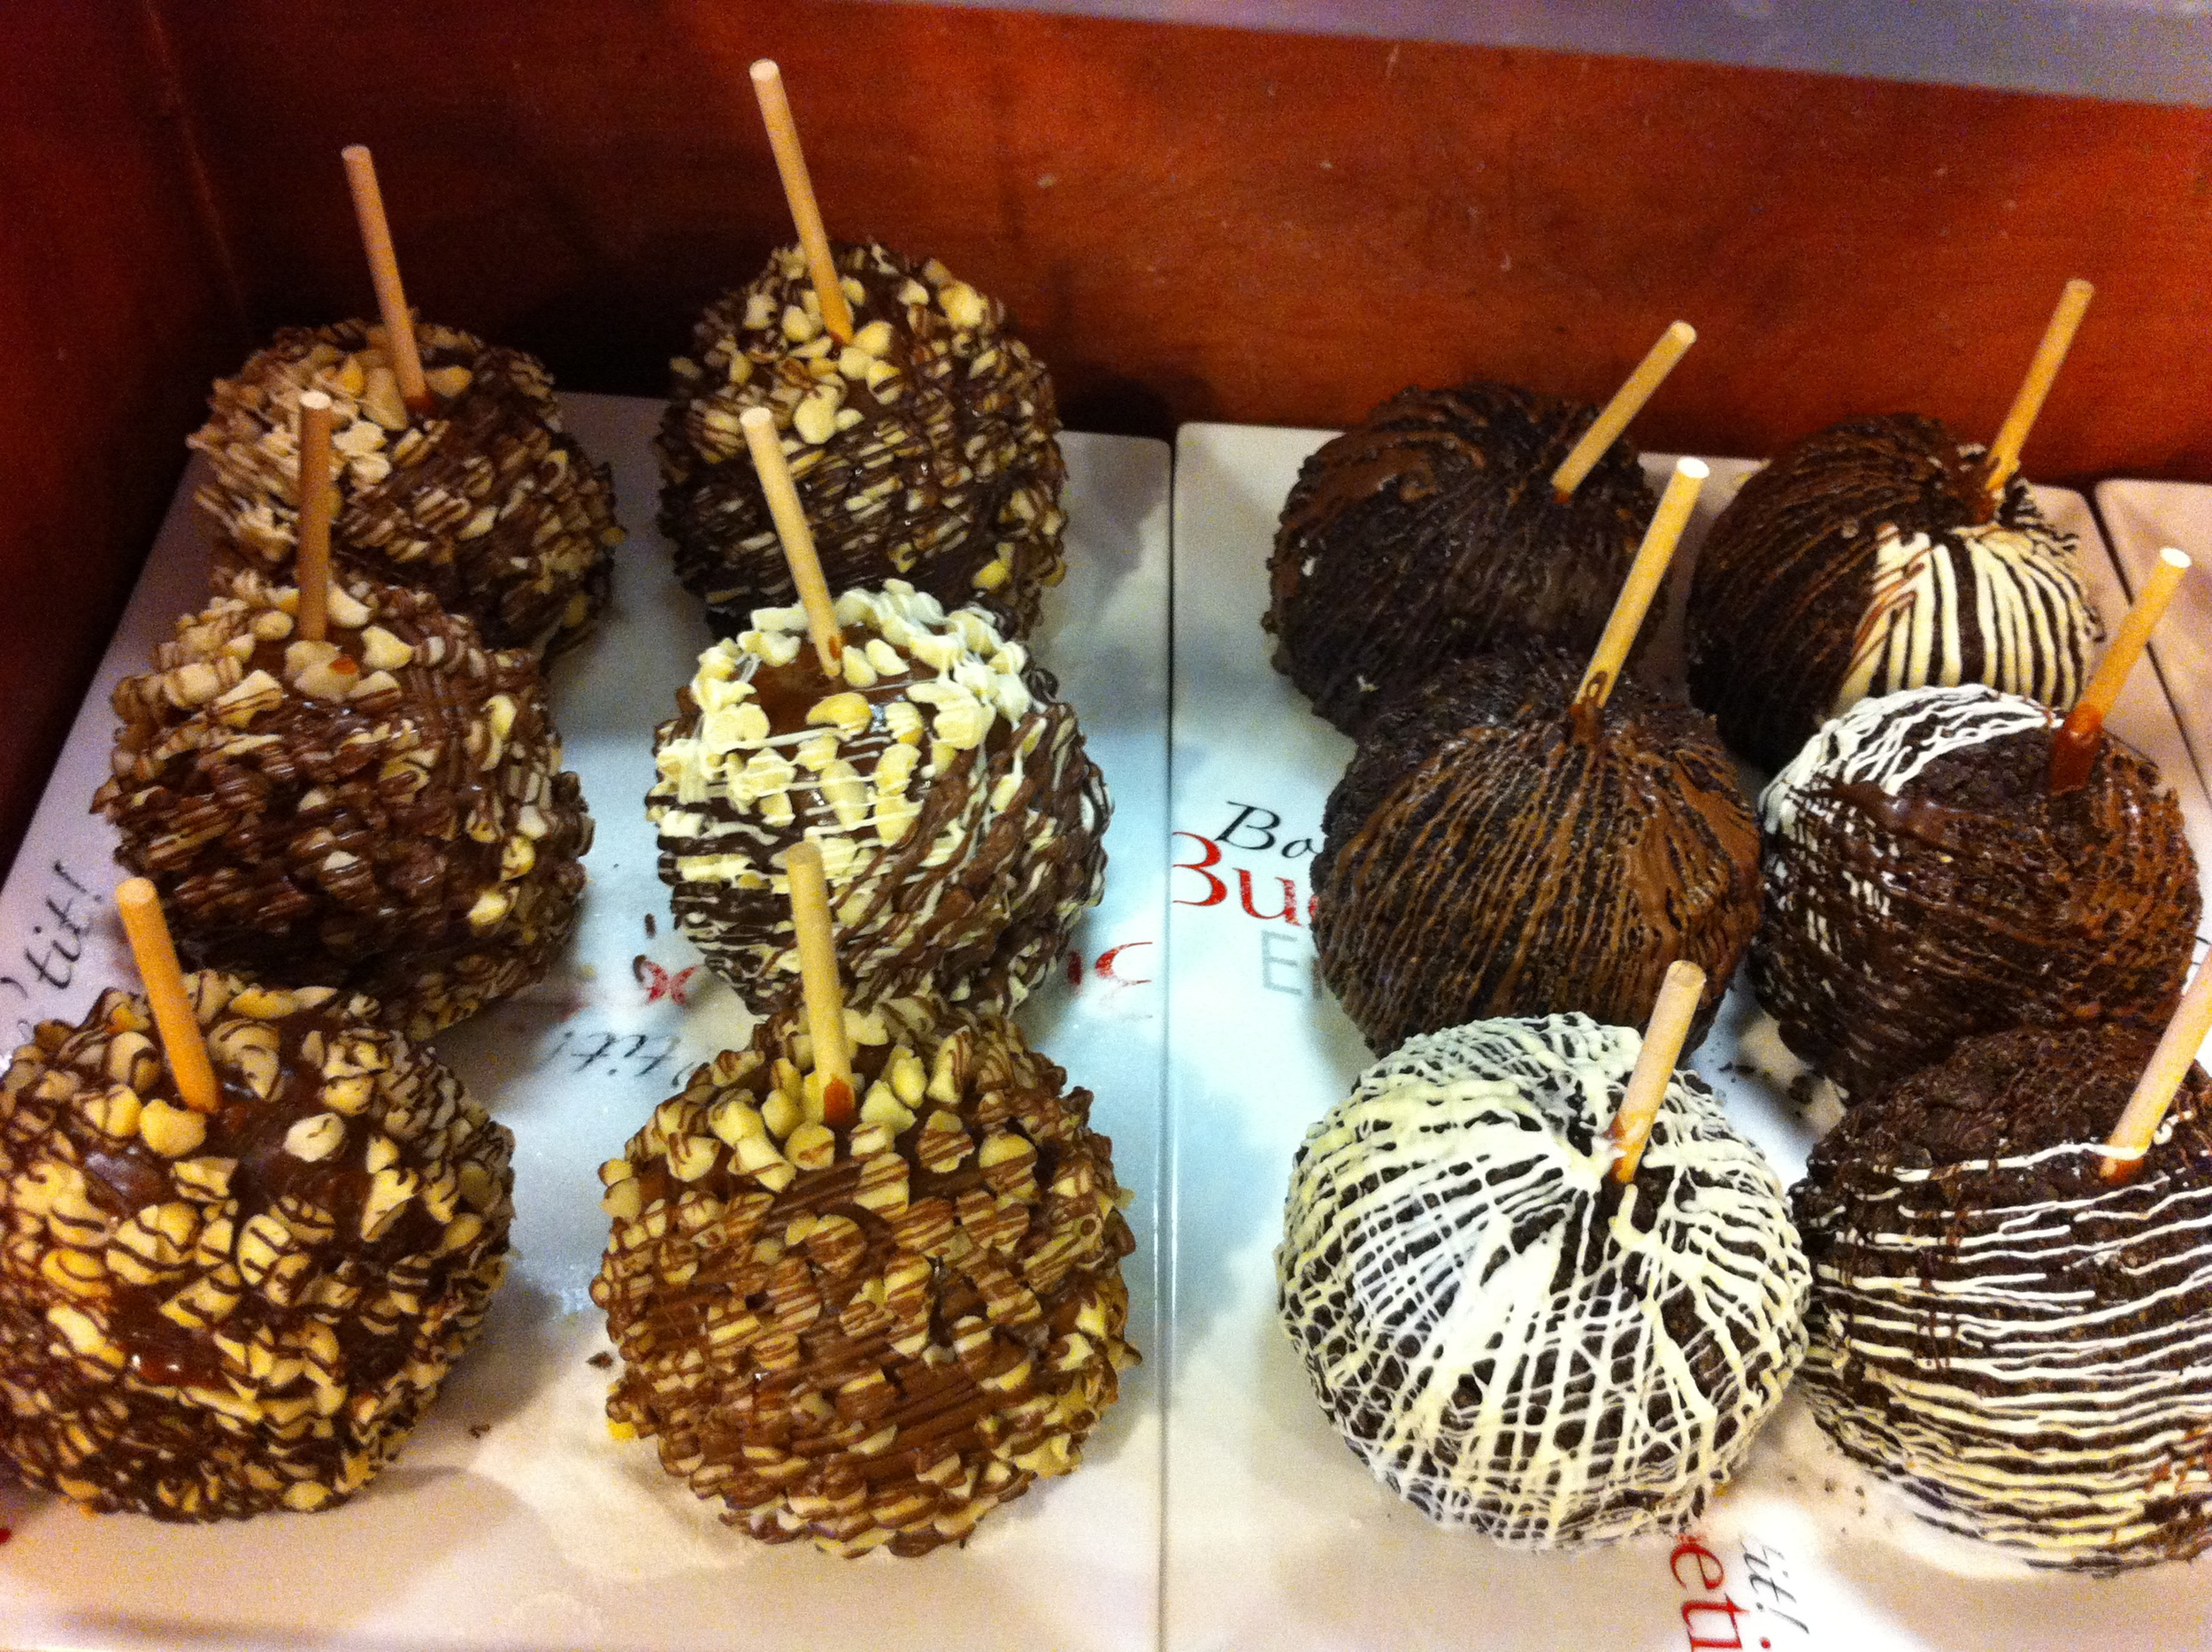 Candy apples anyone?